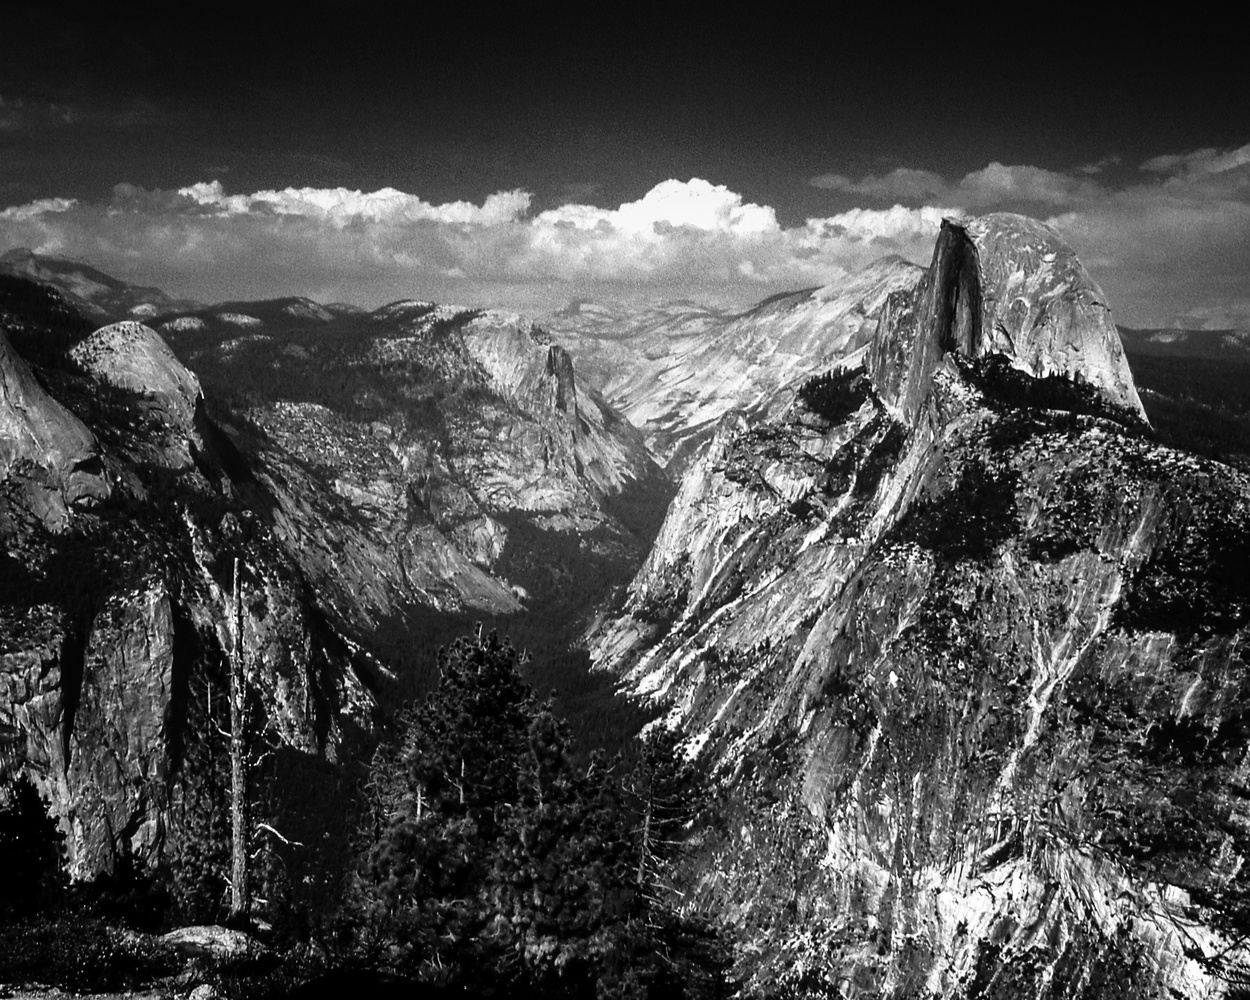 Half Dome from Glacier Point, Yosemite by Jeff Burian